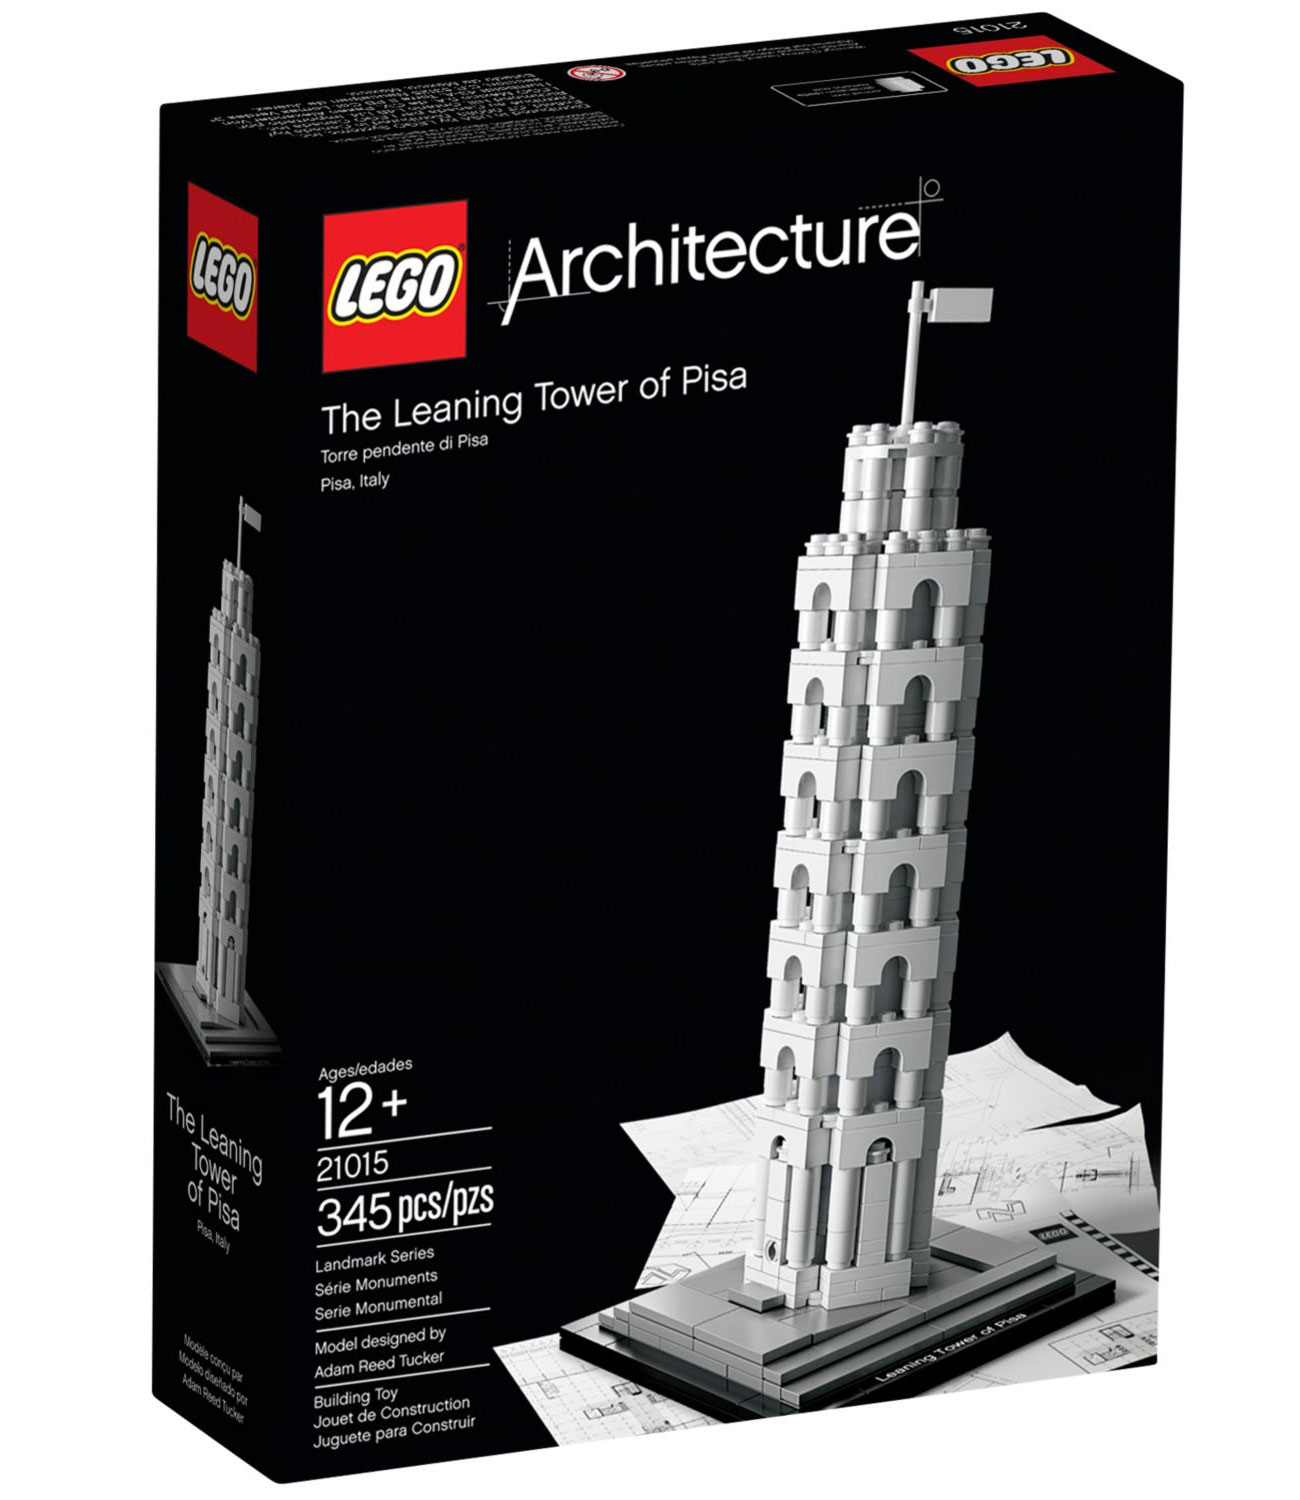 lego architecture 21015 pas cher la tour de pise pise italie. Black Bedroom Furniture Sets. Home Design Ideas